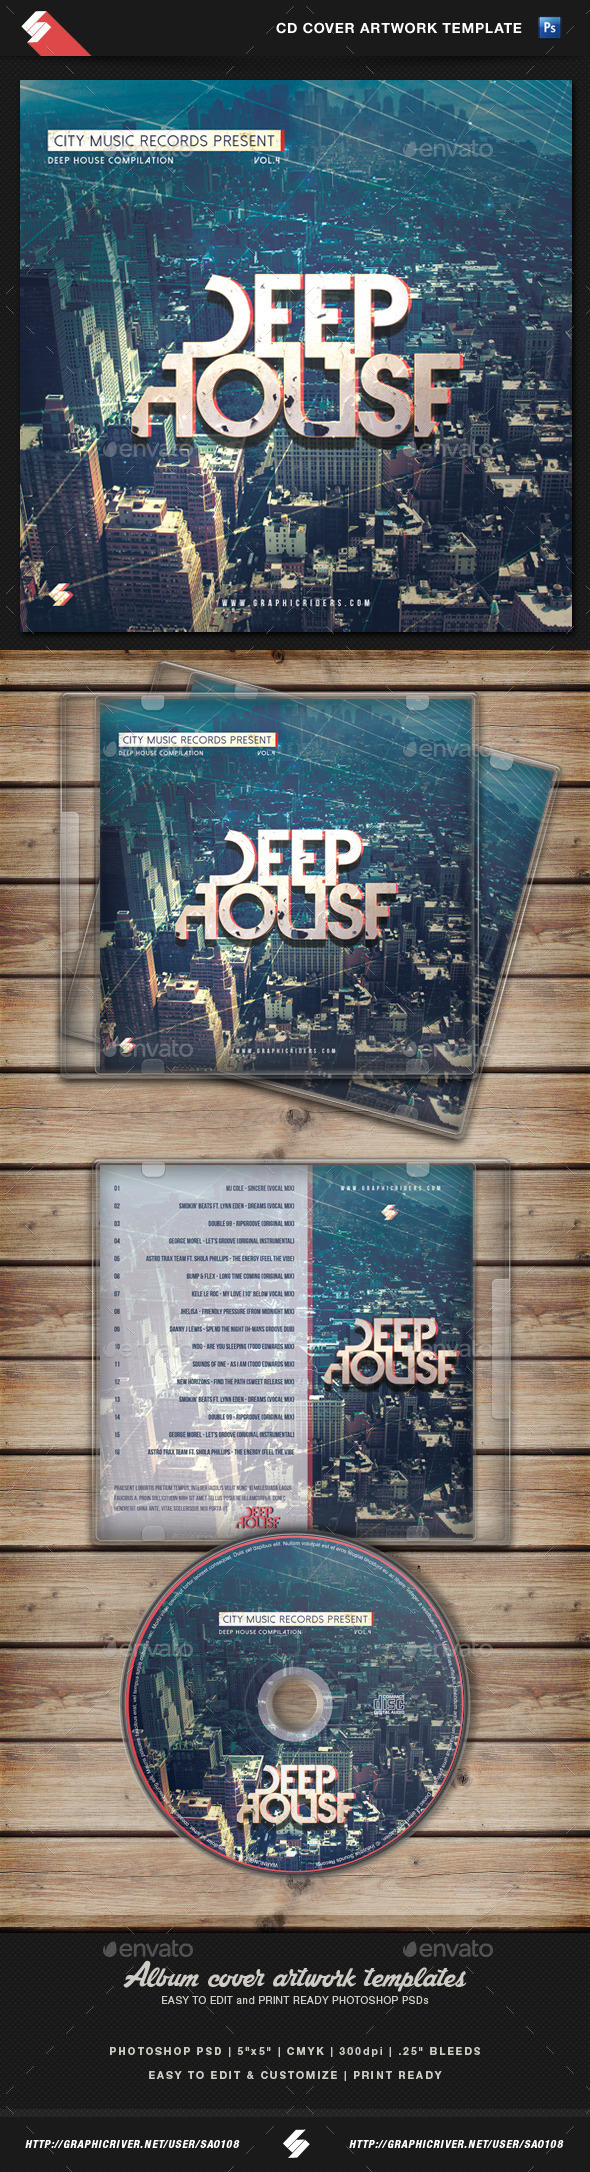 GraphicRiver Deep House CD Cover Artwork Template 11048684